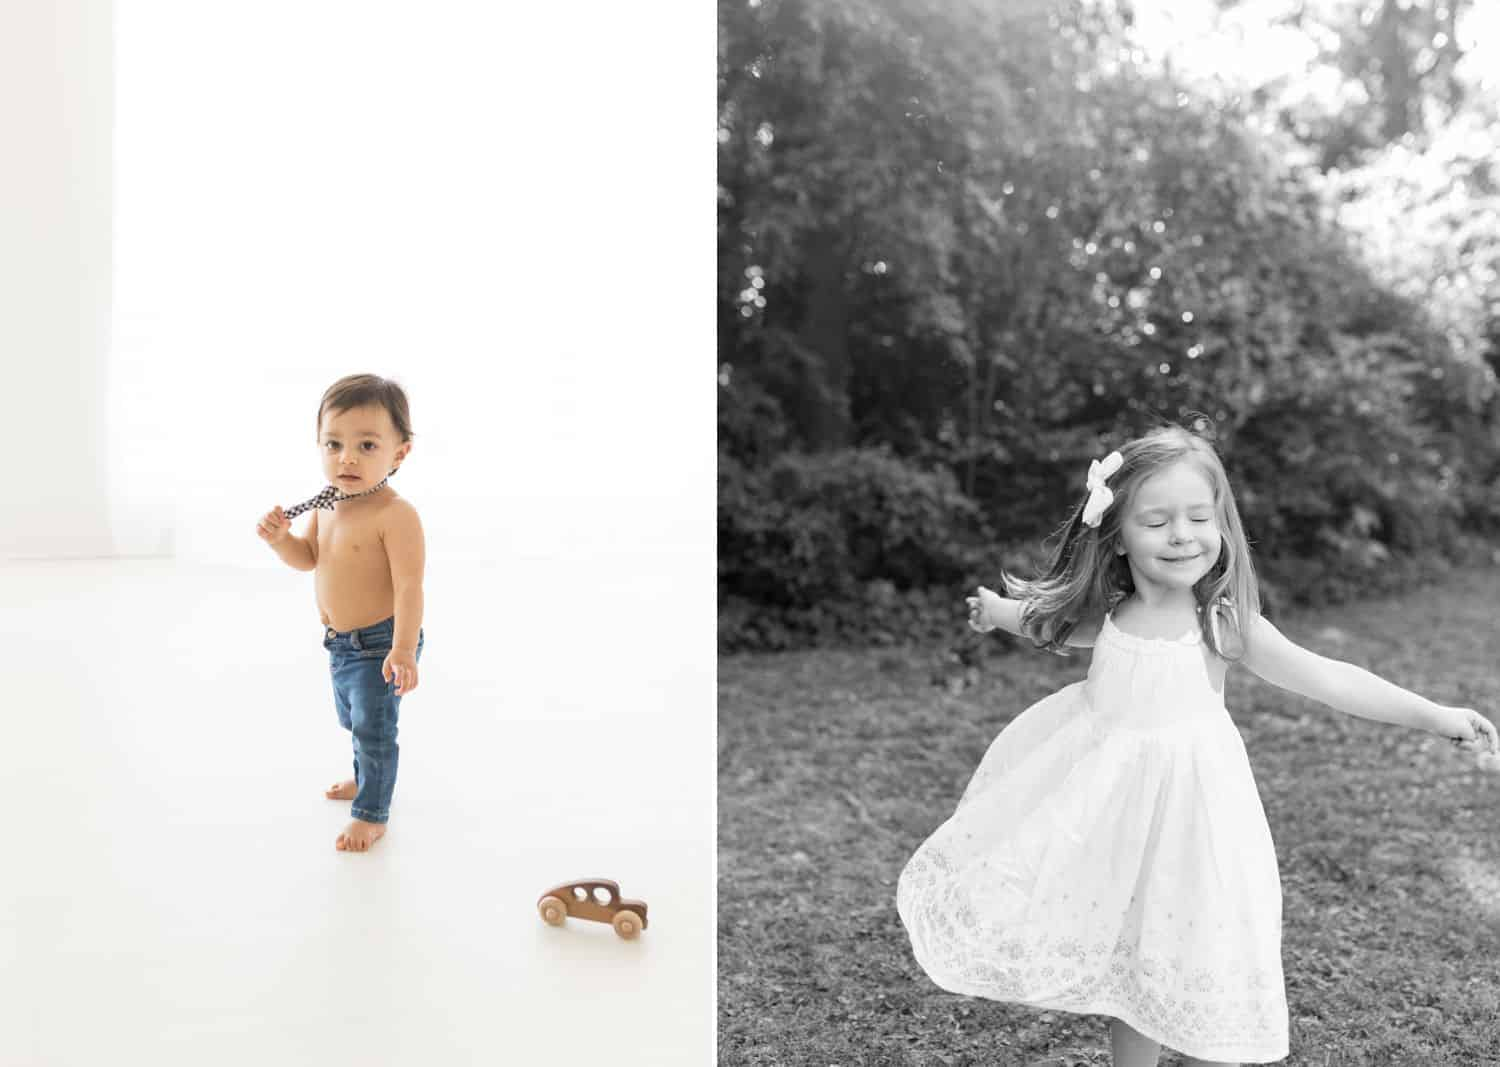 How To Get More Photography Clients? Start Saying No! - Children playing, in-studio and outside.